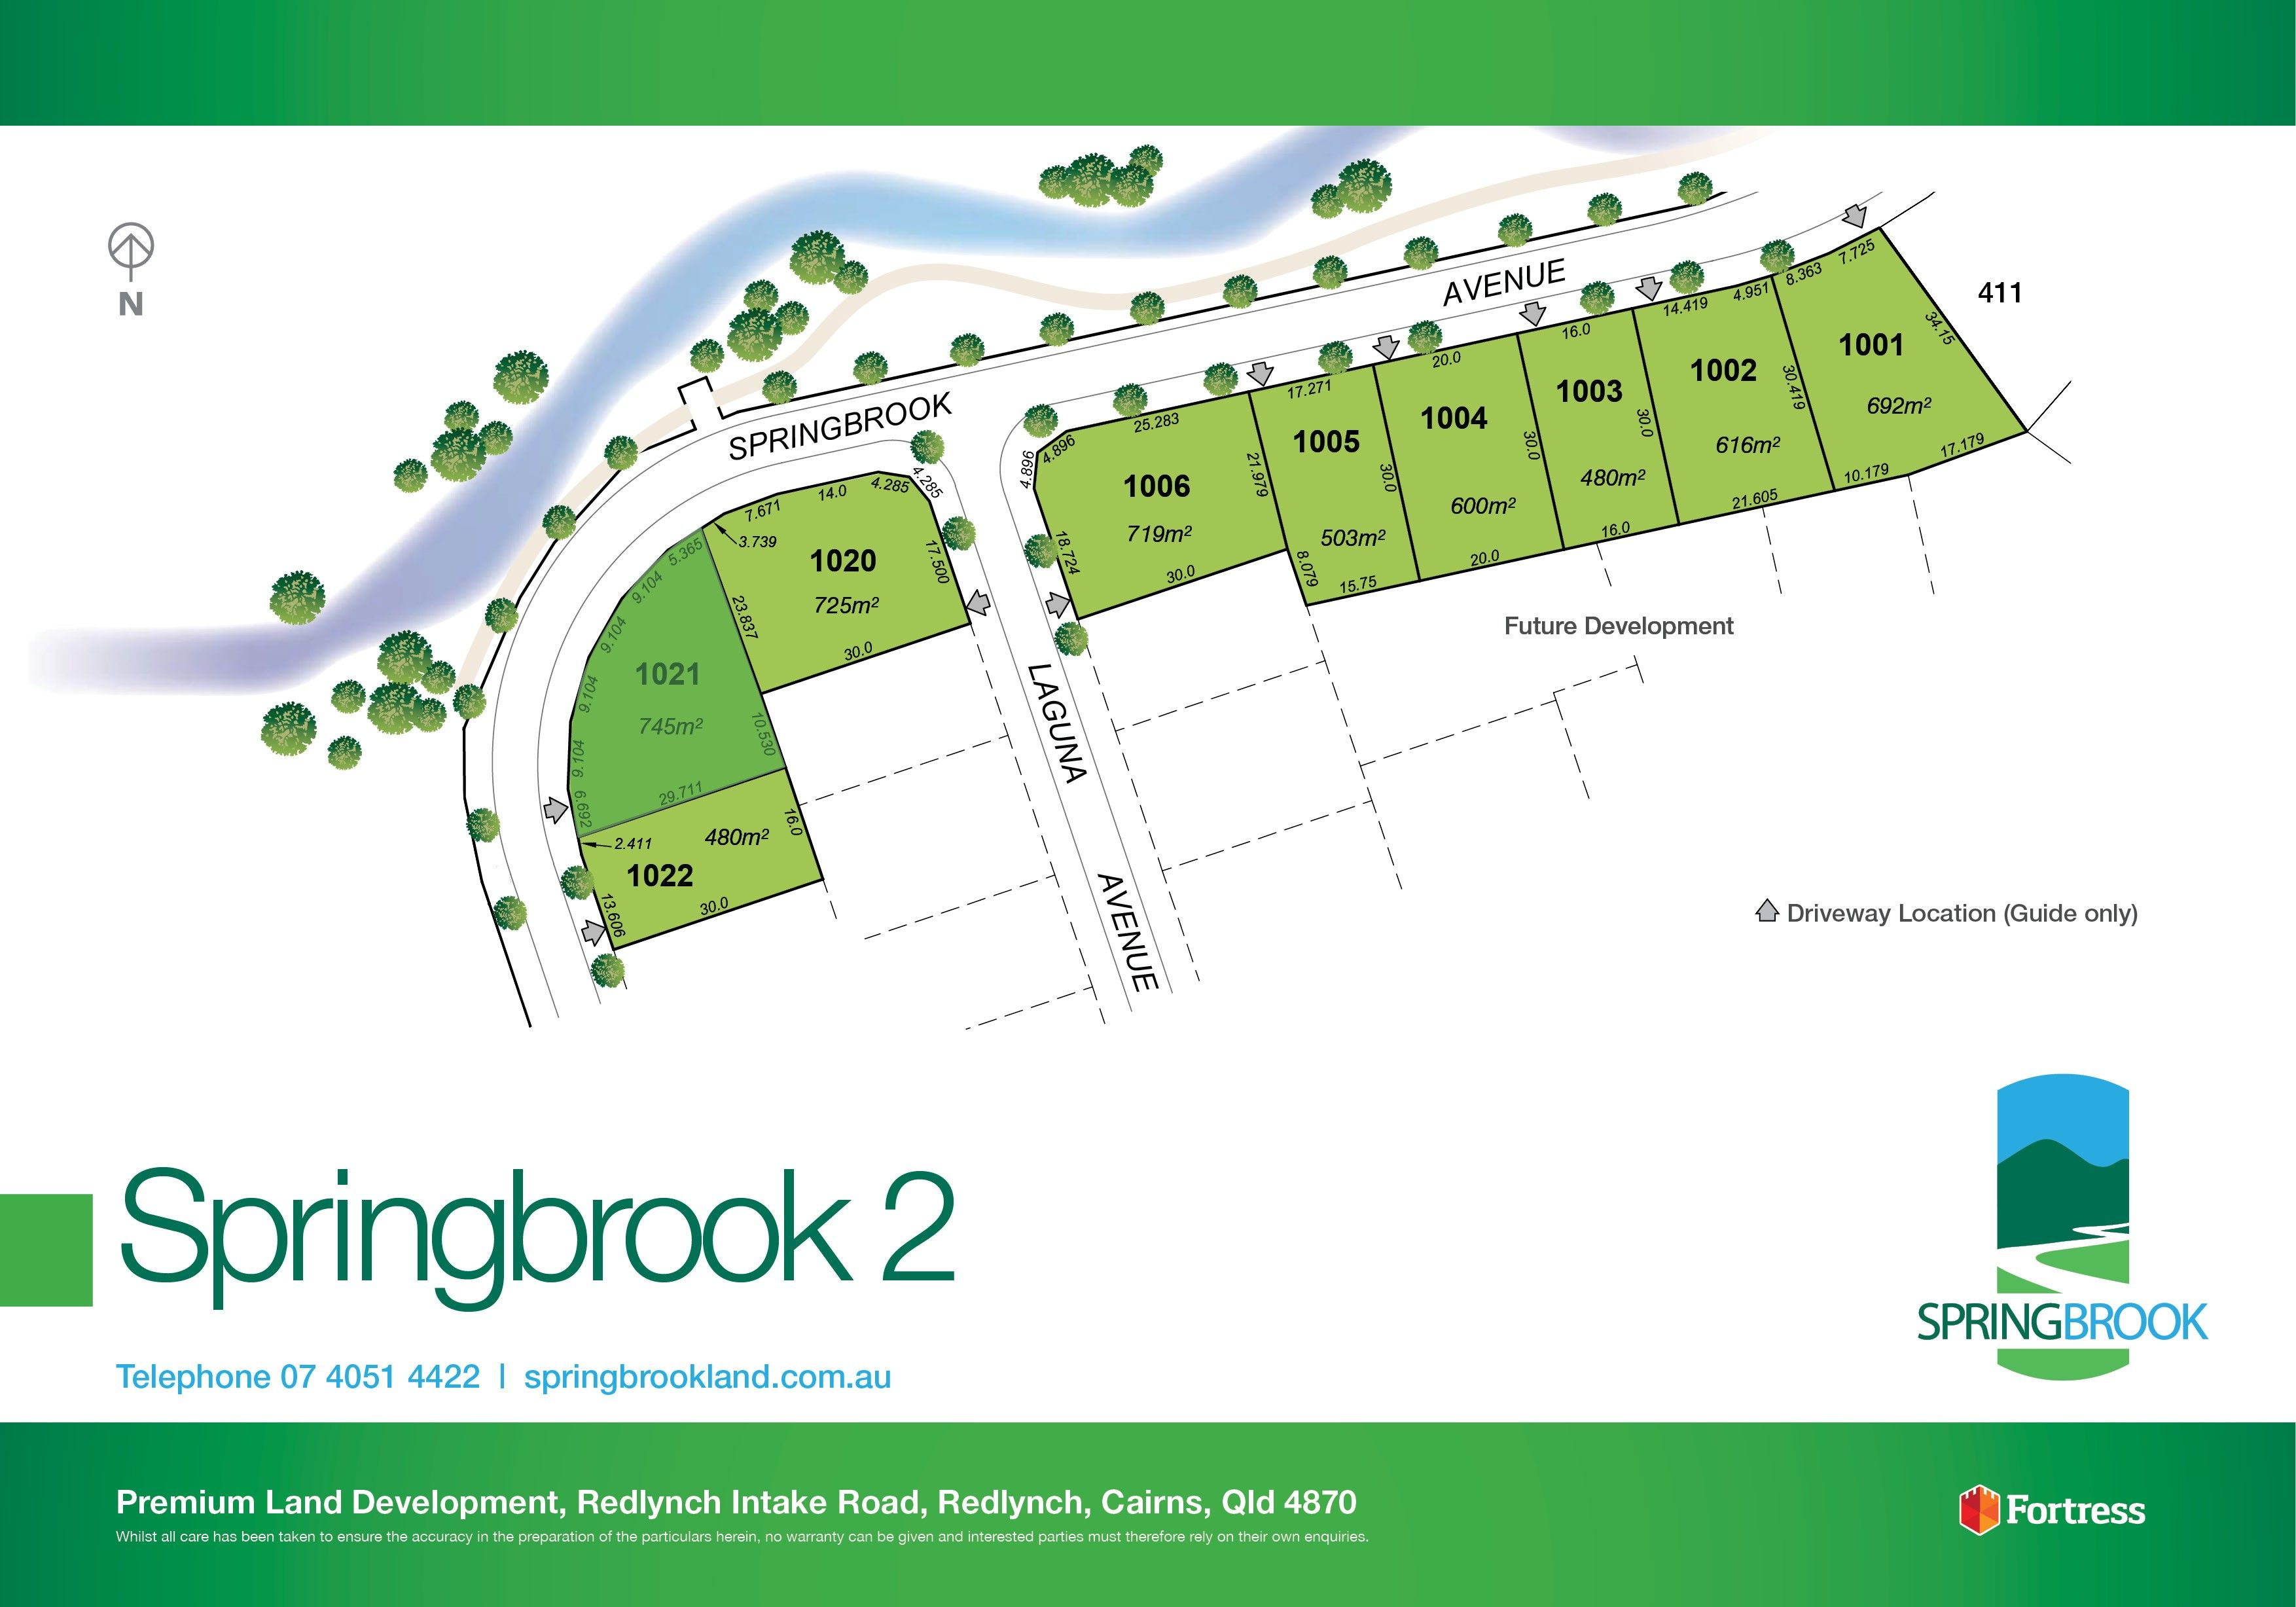 Lot 1021 Springbrook Avenue, Redlynch QLD 4870